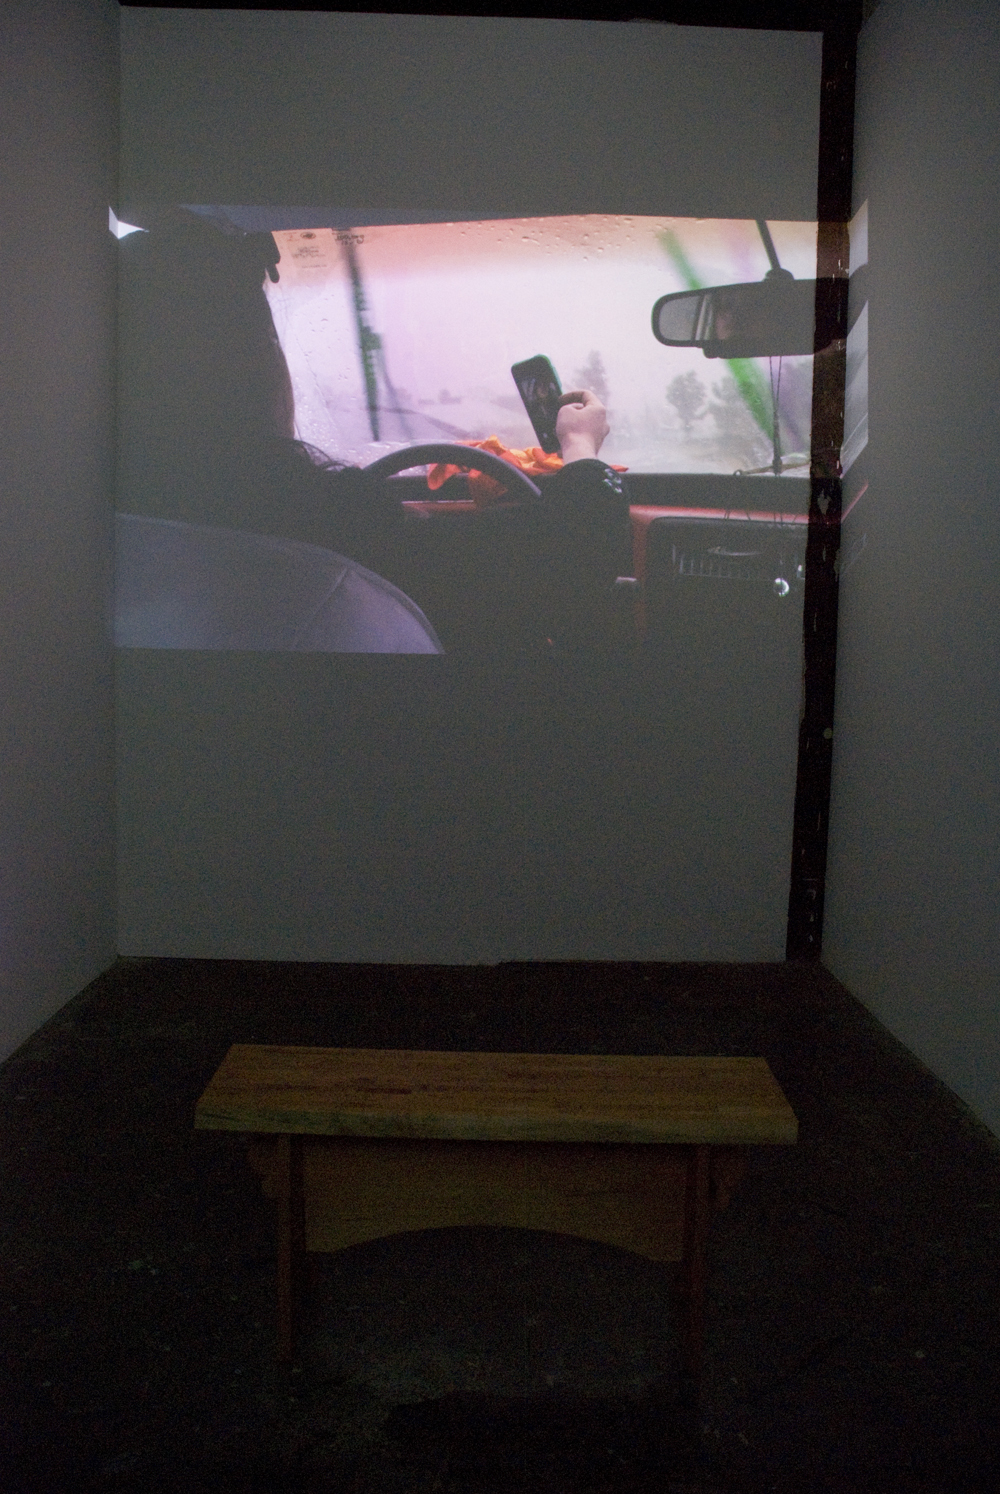 Third Party Installation Images 45_final.jpg